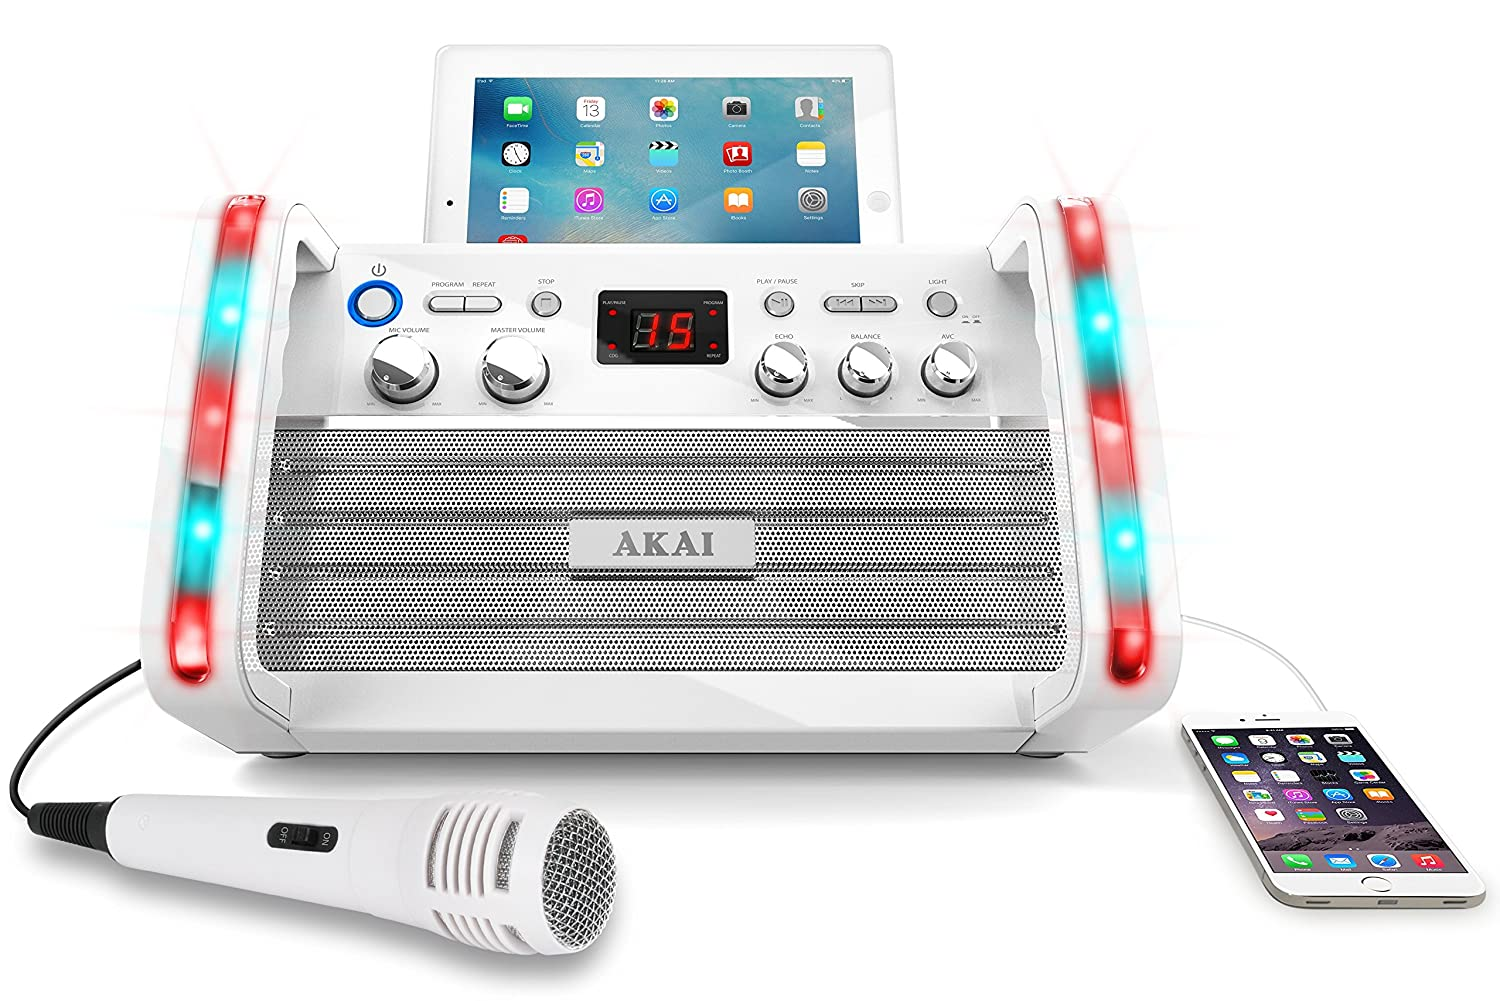 Akai KS213W Portable CD&G Karaoke System with Tablet Cradle, White